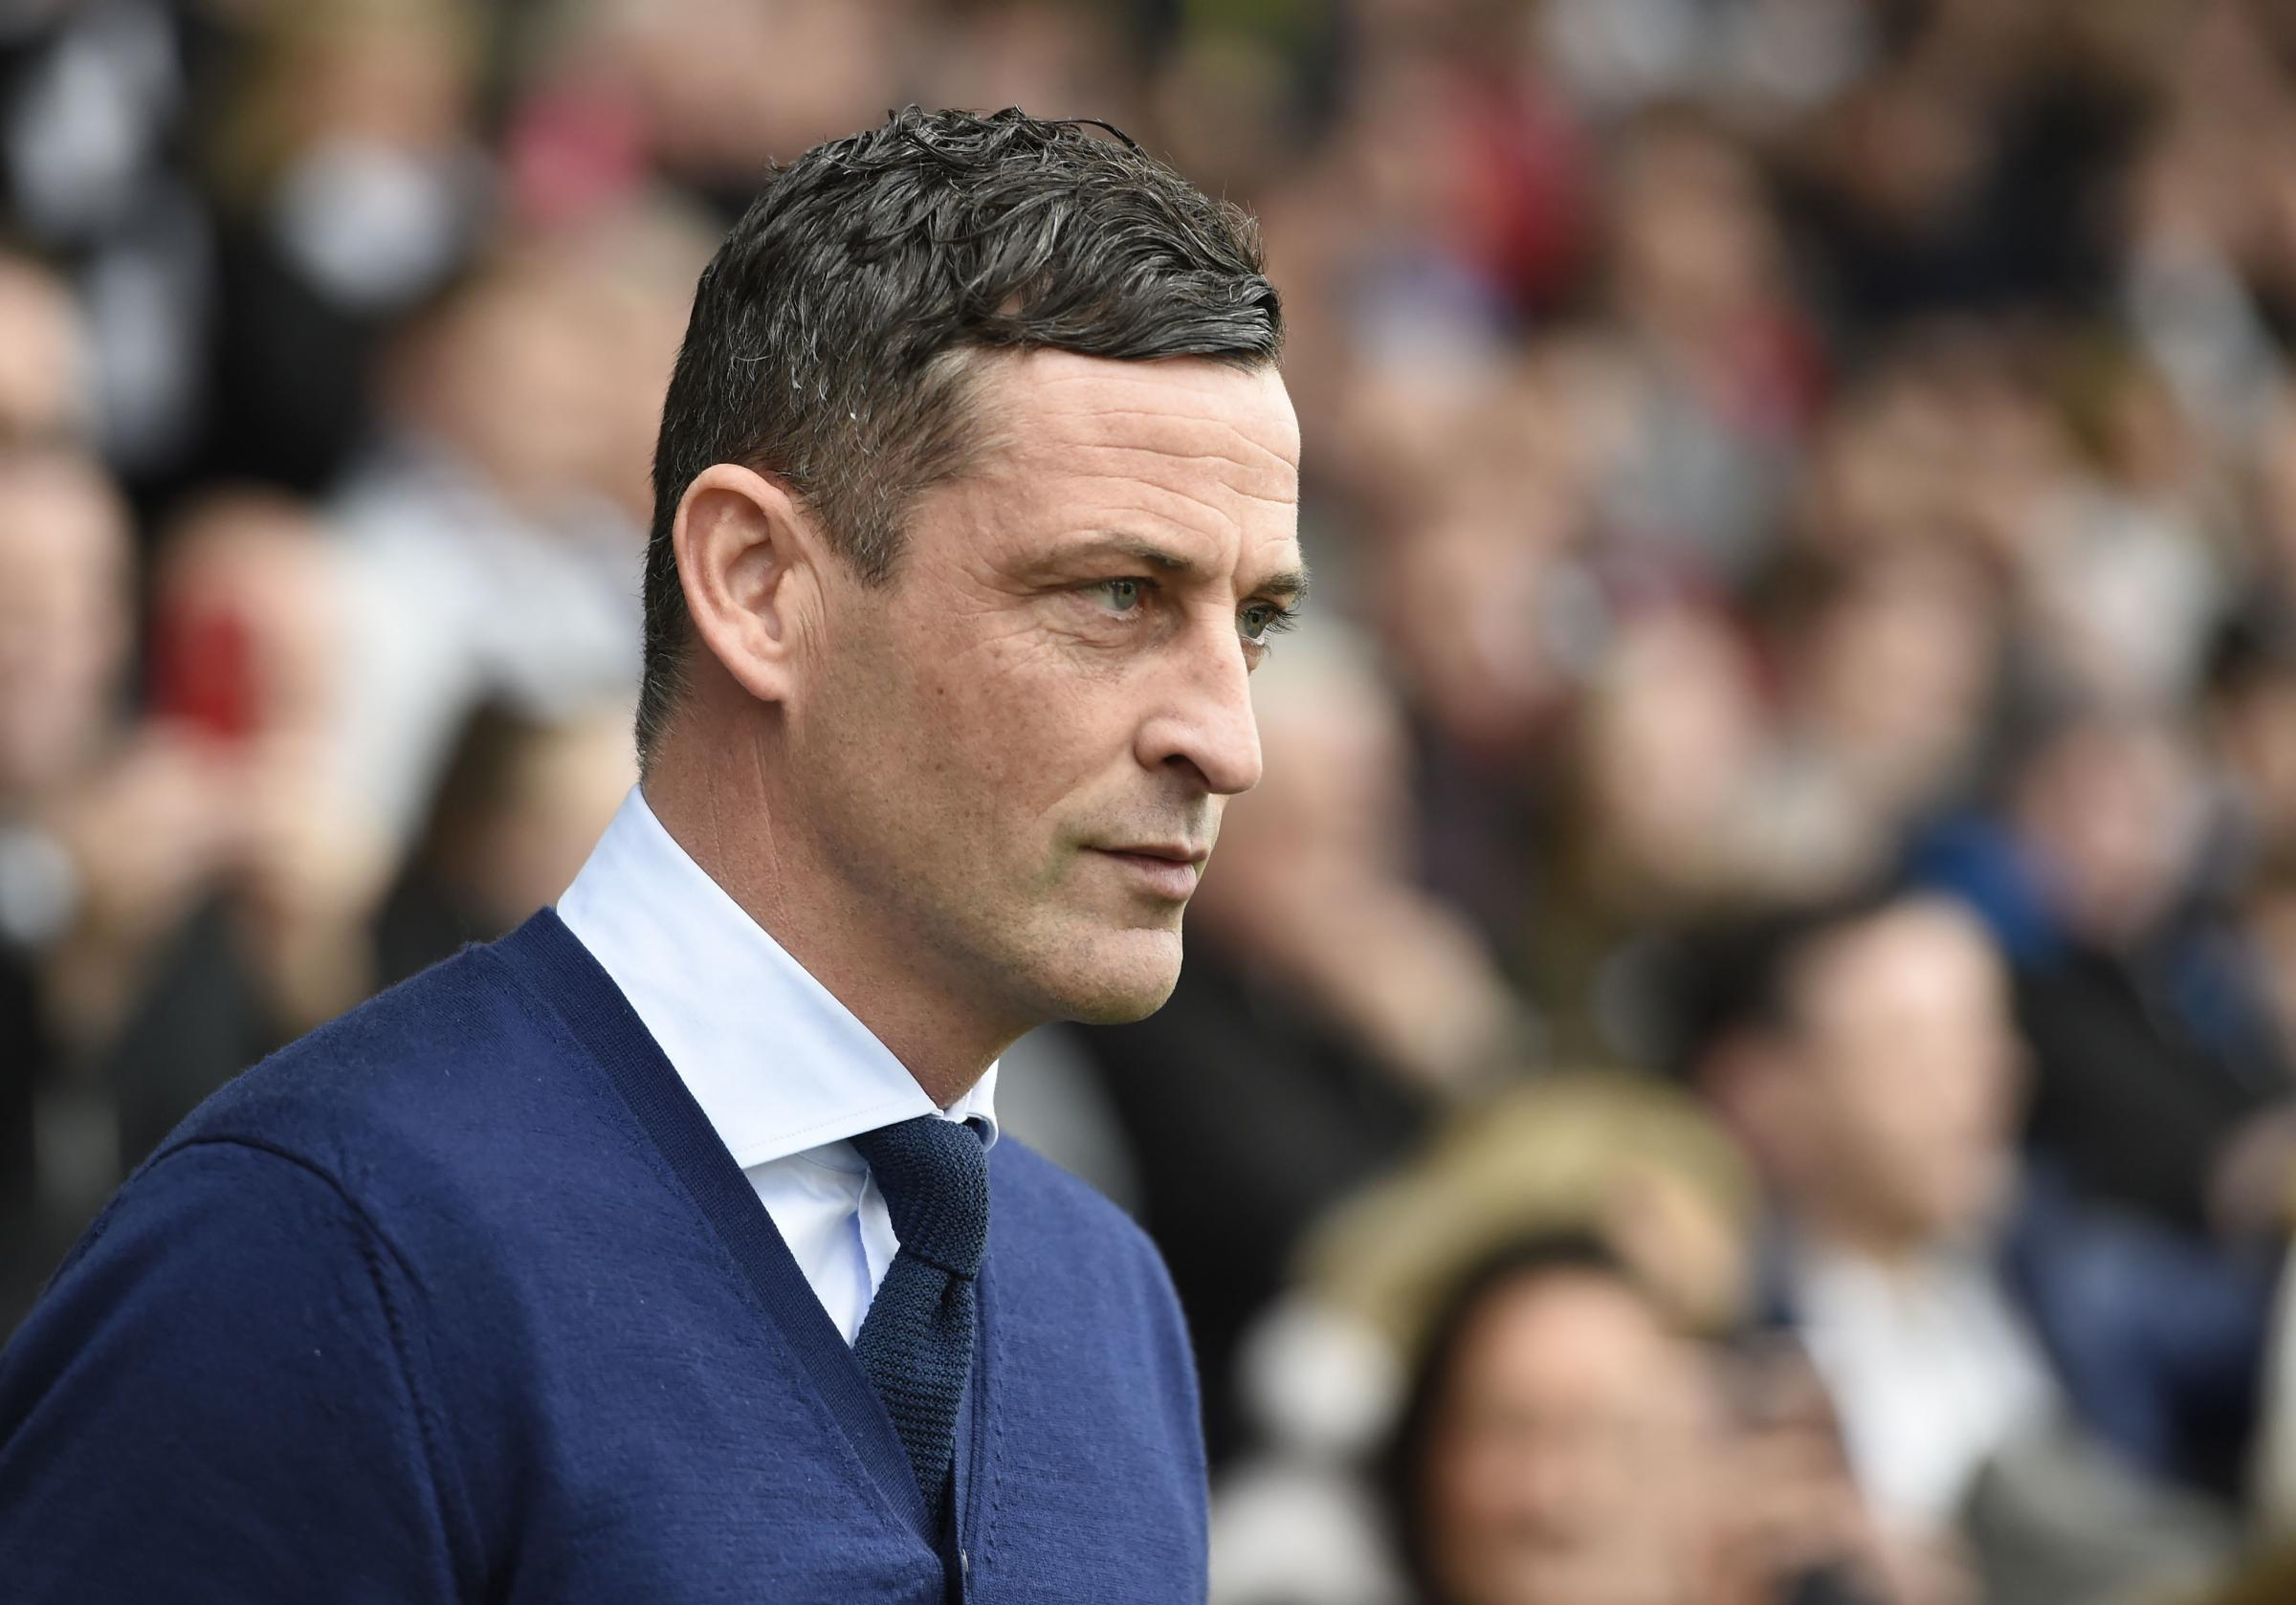 Jack Ross to be unveiled as Hibernian manager within 24 hours